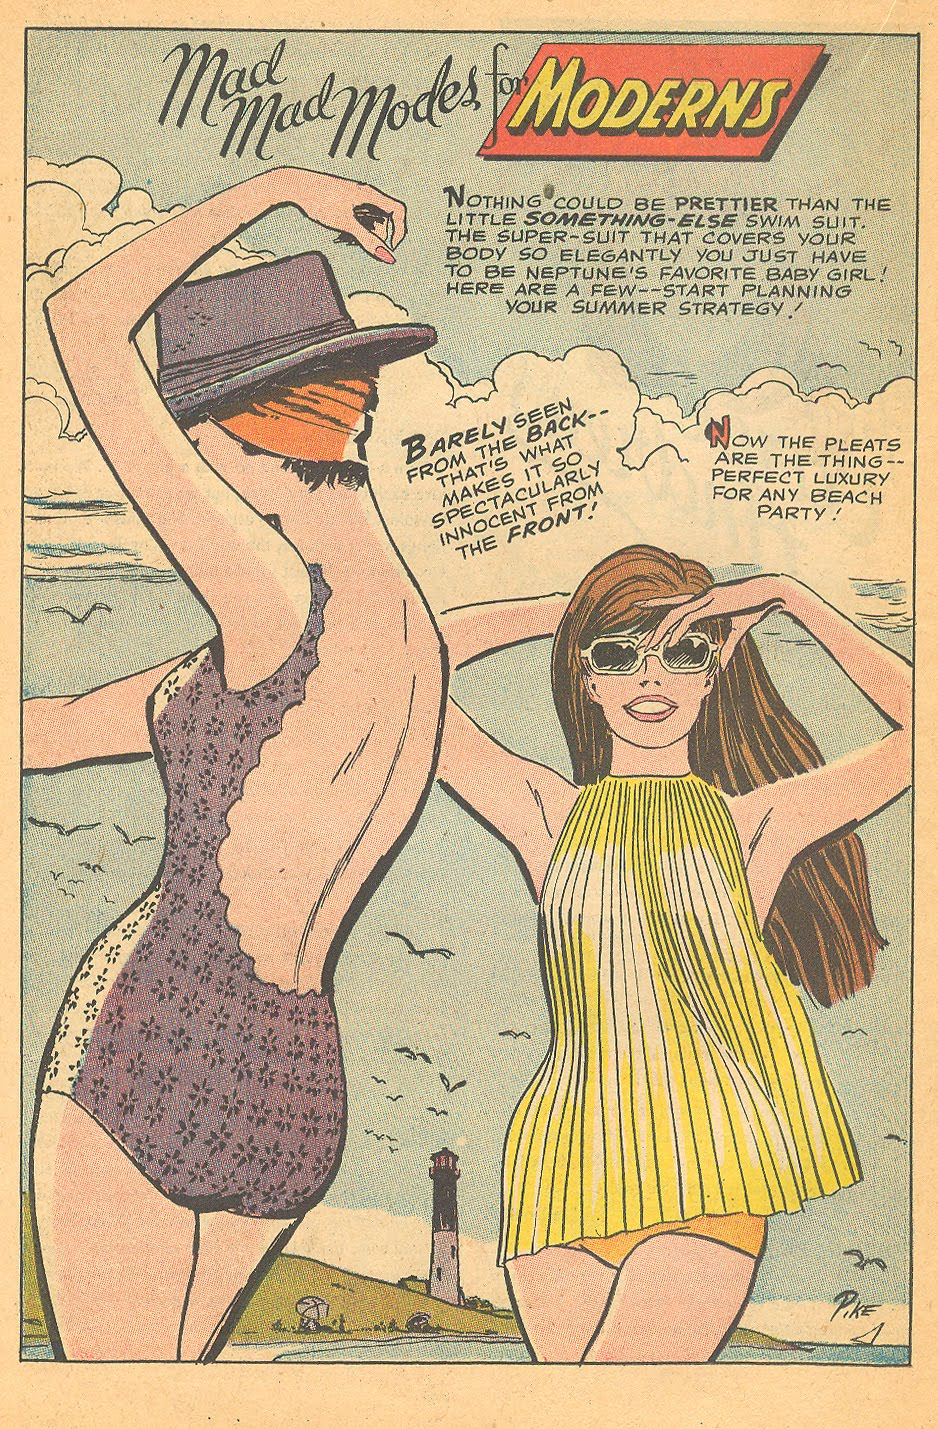 They sure don't make swimsuits like these anymore!